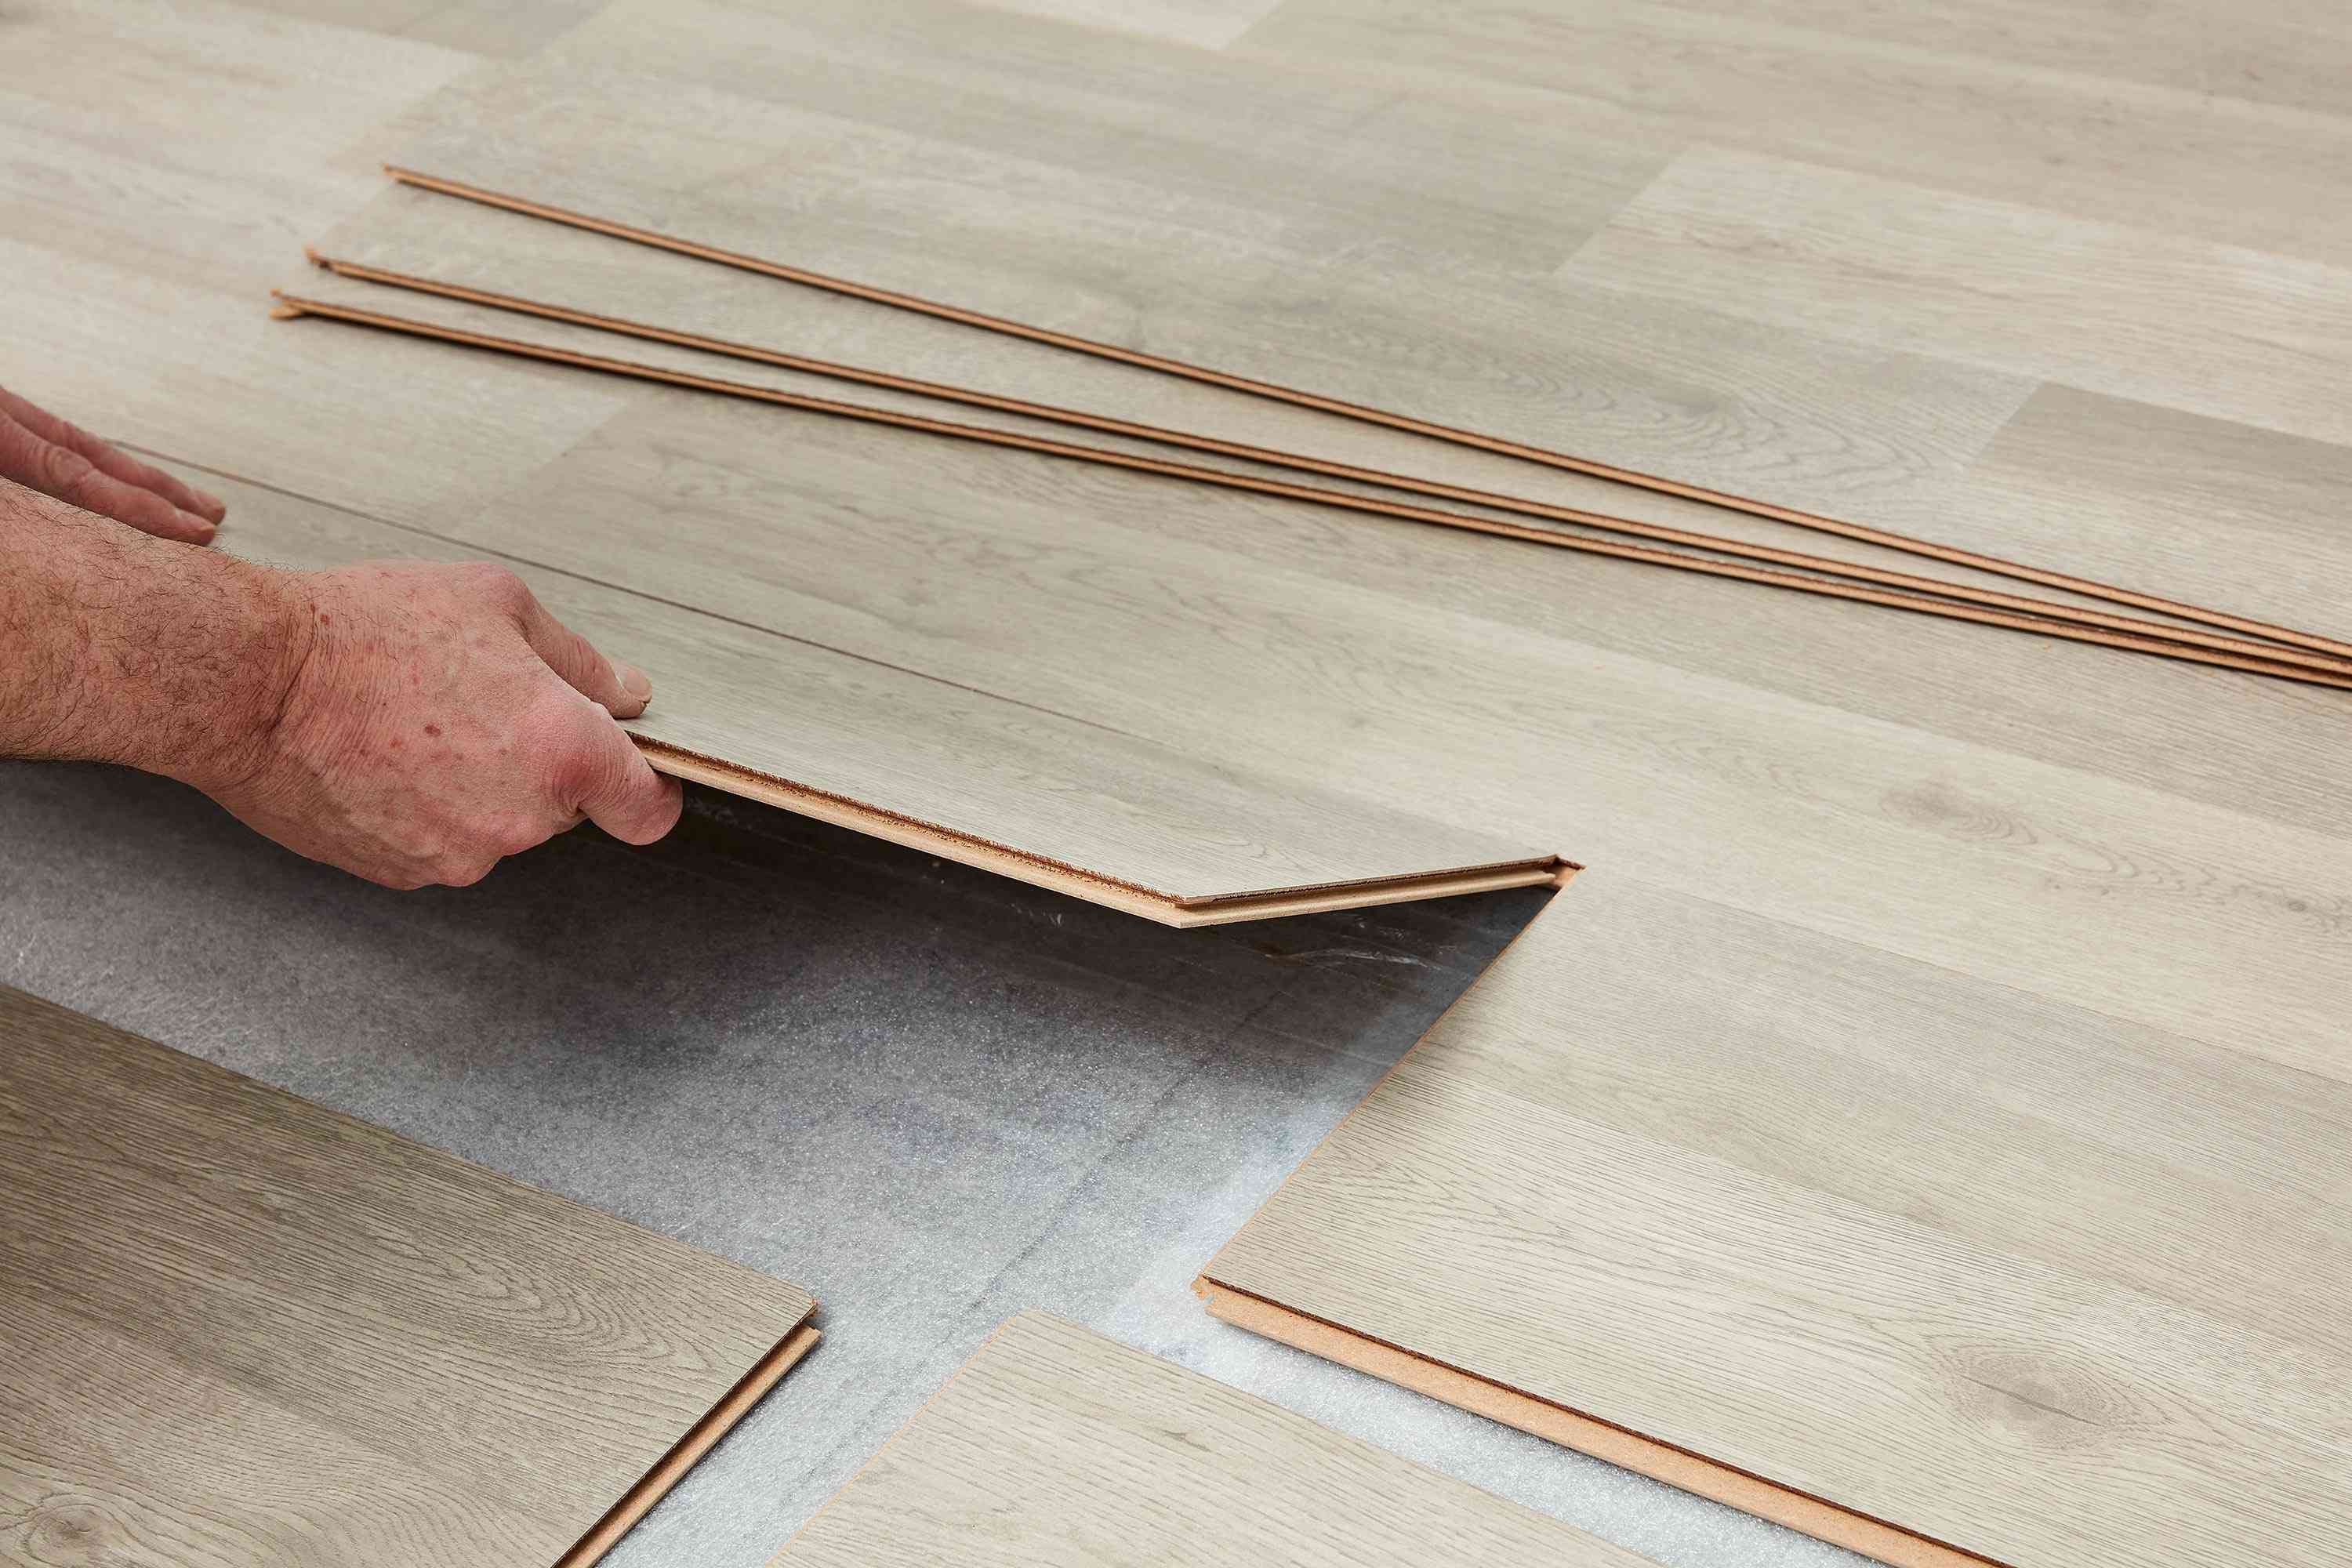 How To Install Laminate Flooring, What Do You Need To Put Under Laminate Flooring